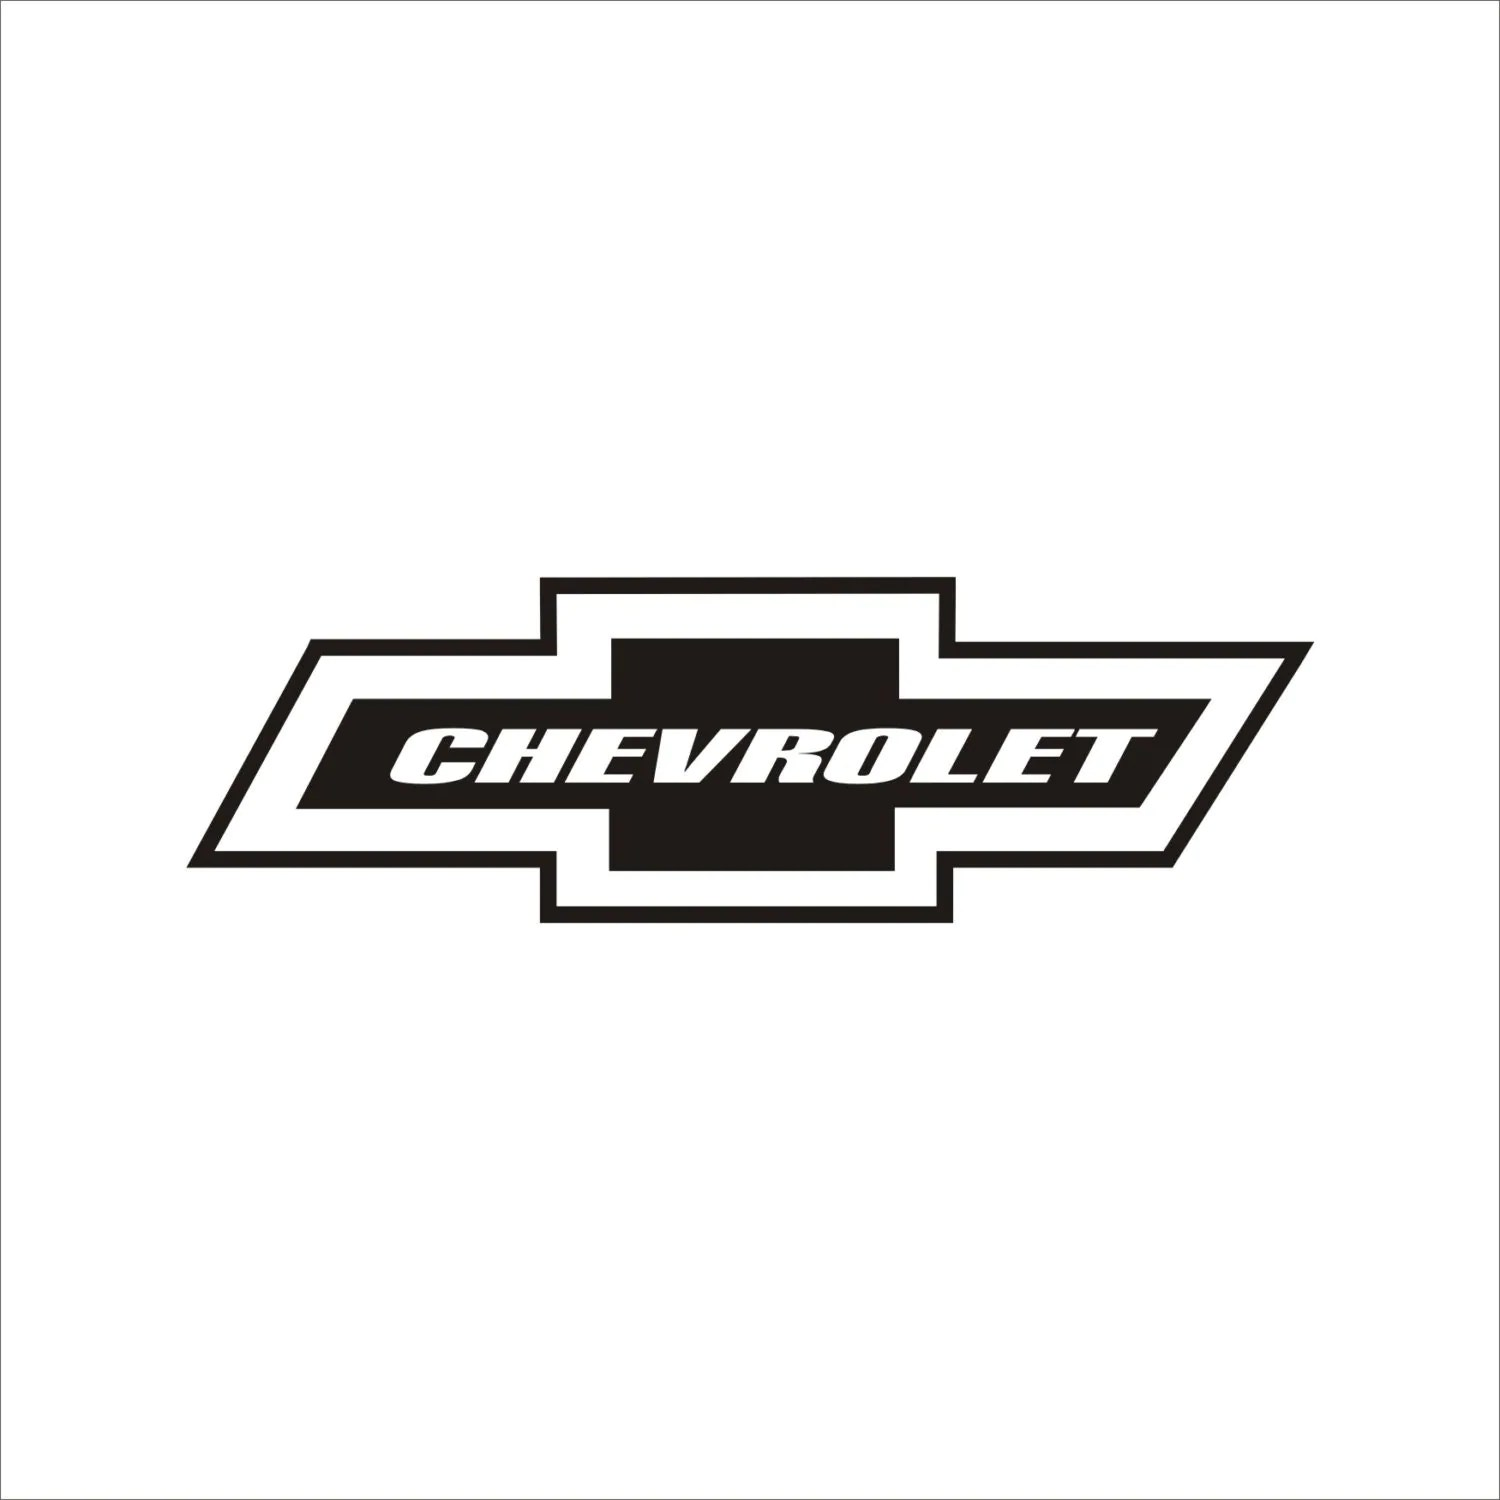 Chevy Bow Tie Decal By Qualitydecals On Etsy